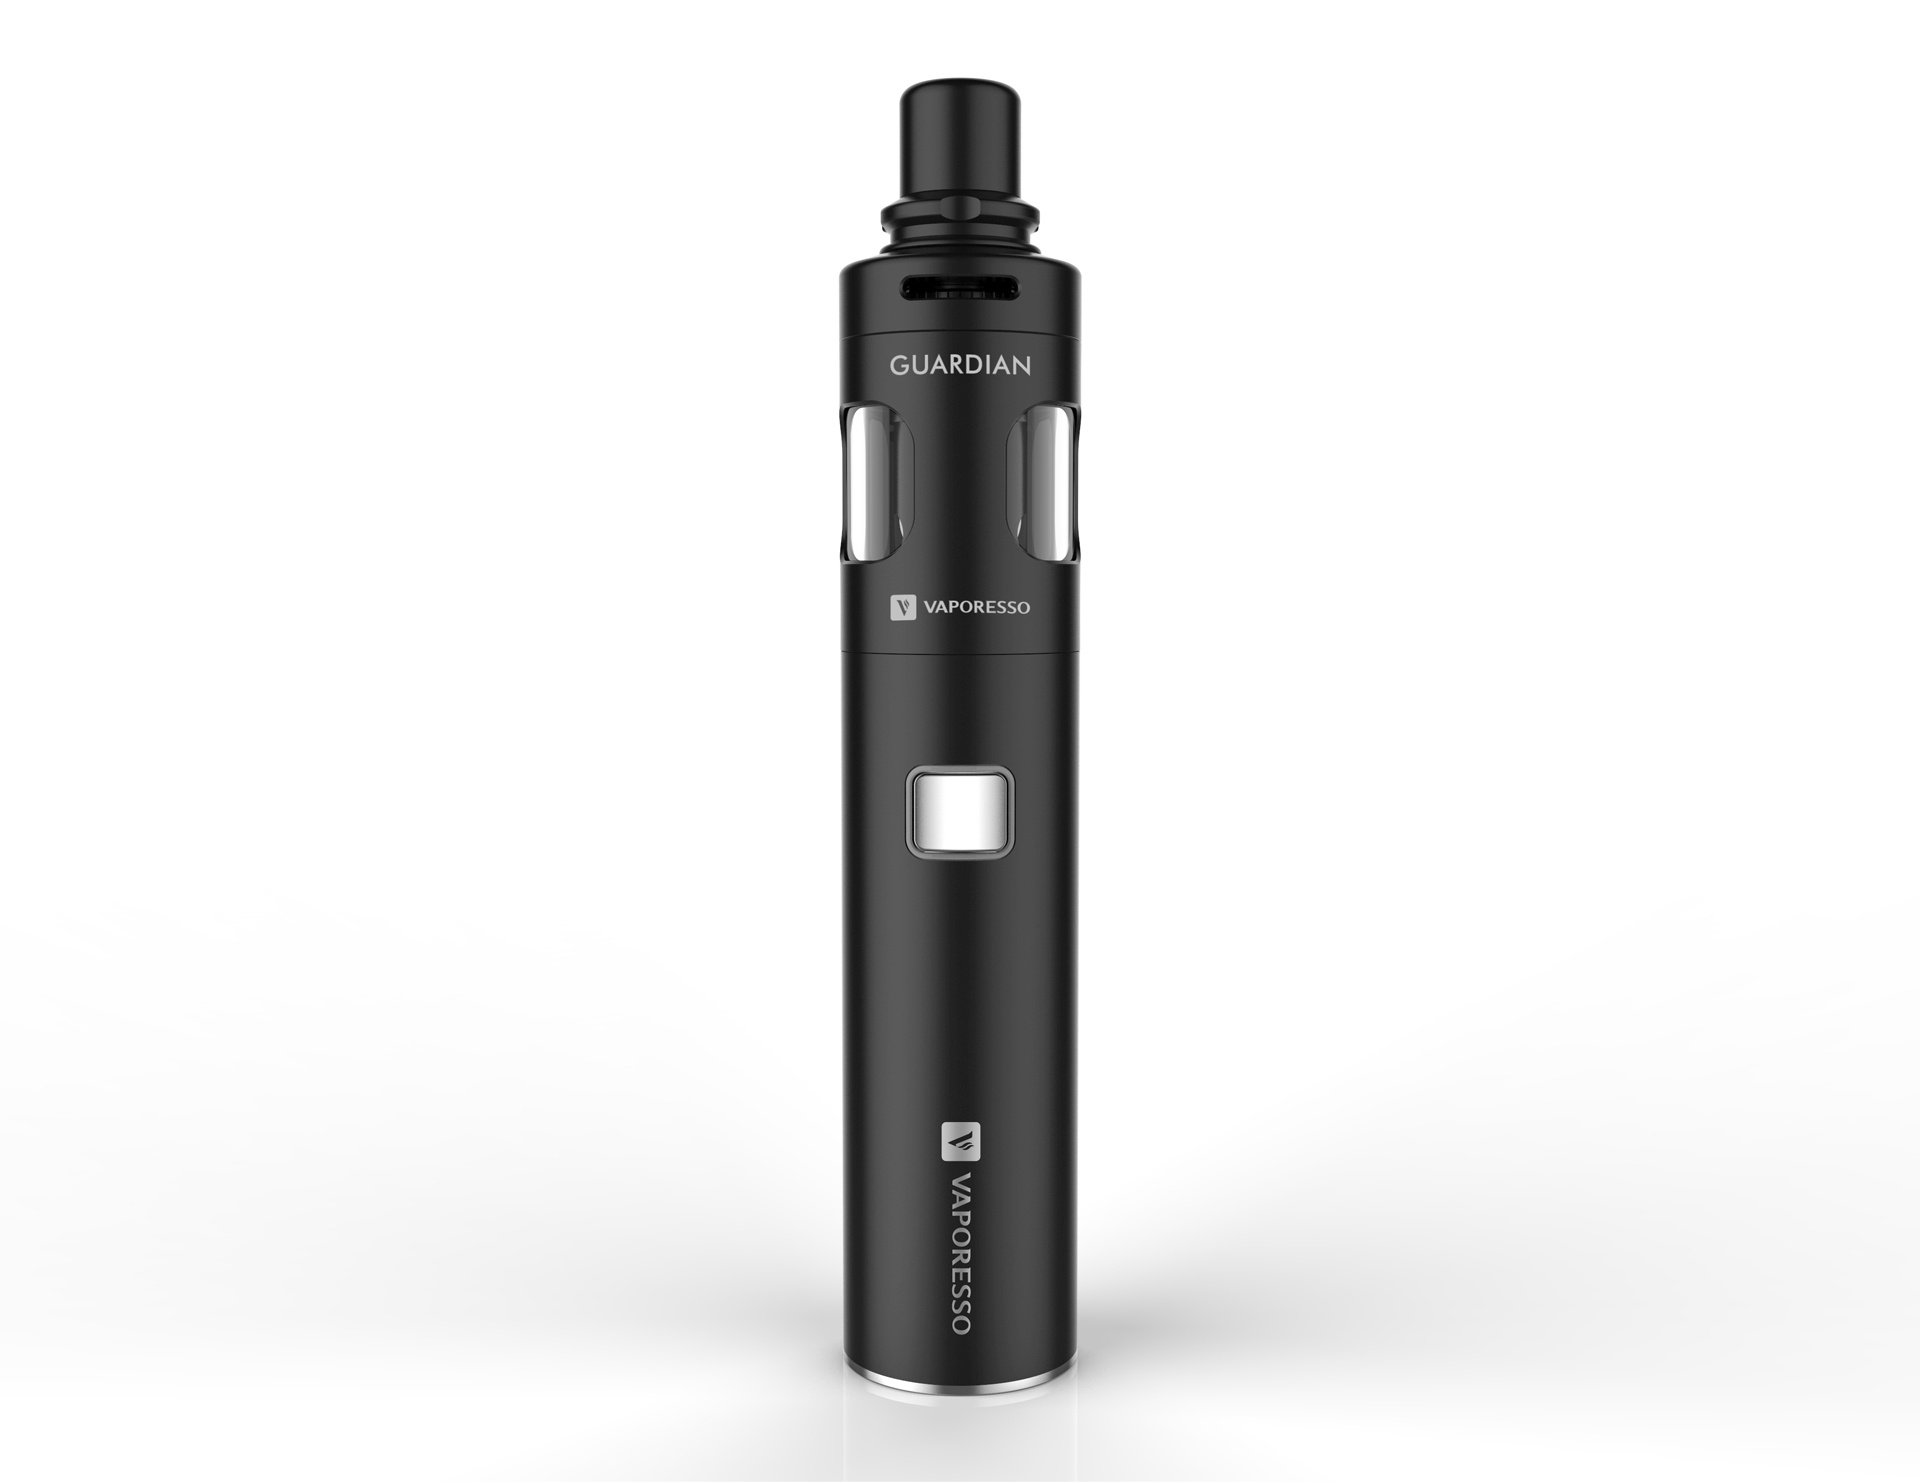 vaporesso_guardian_one_1.jpg